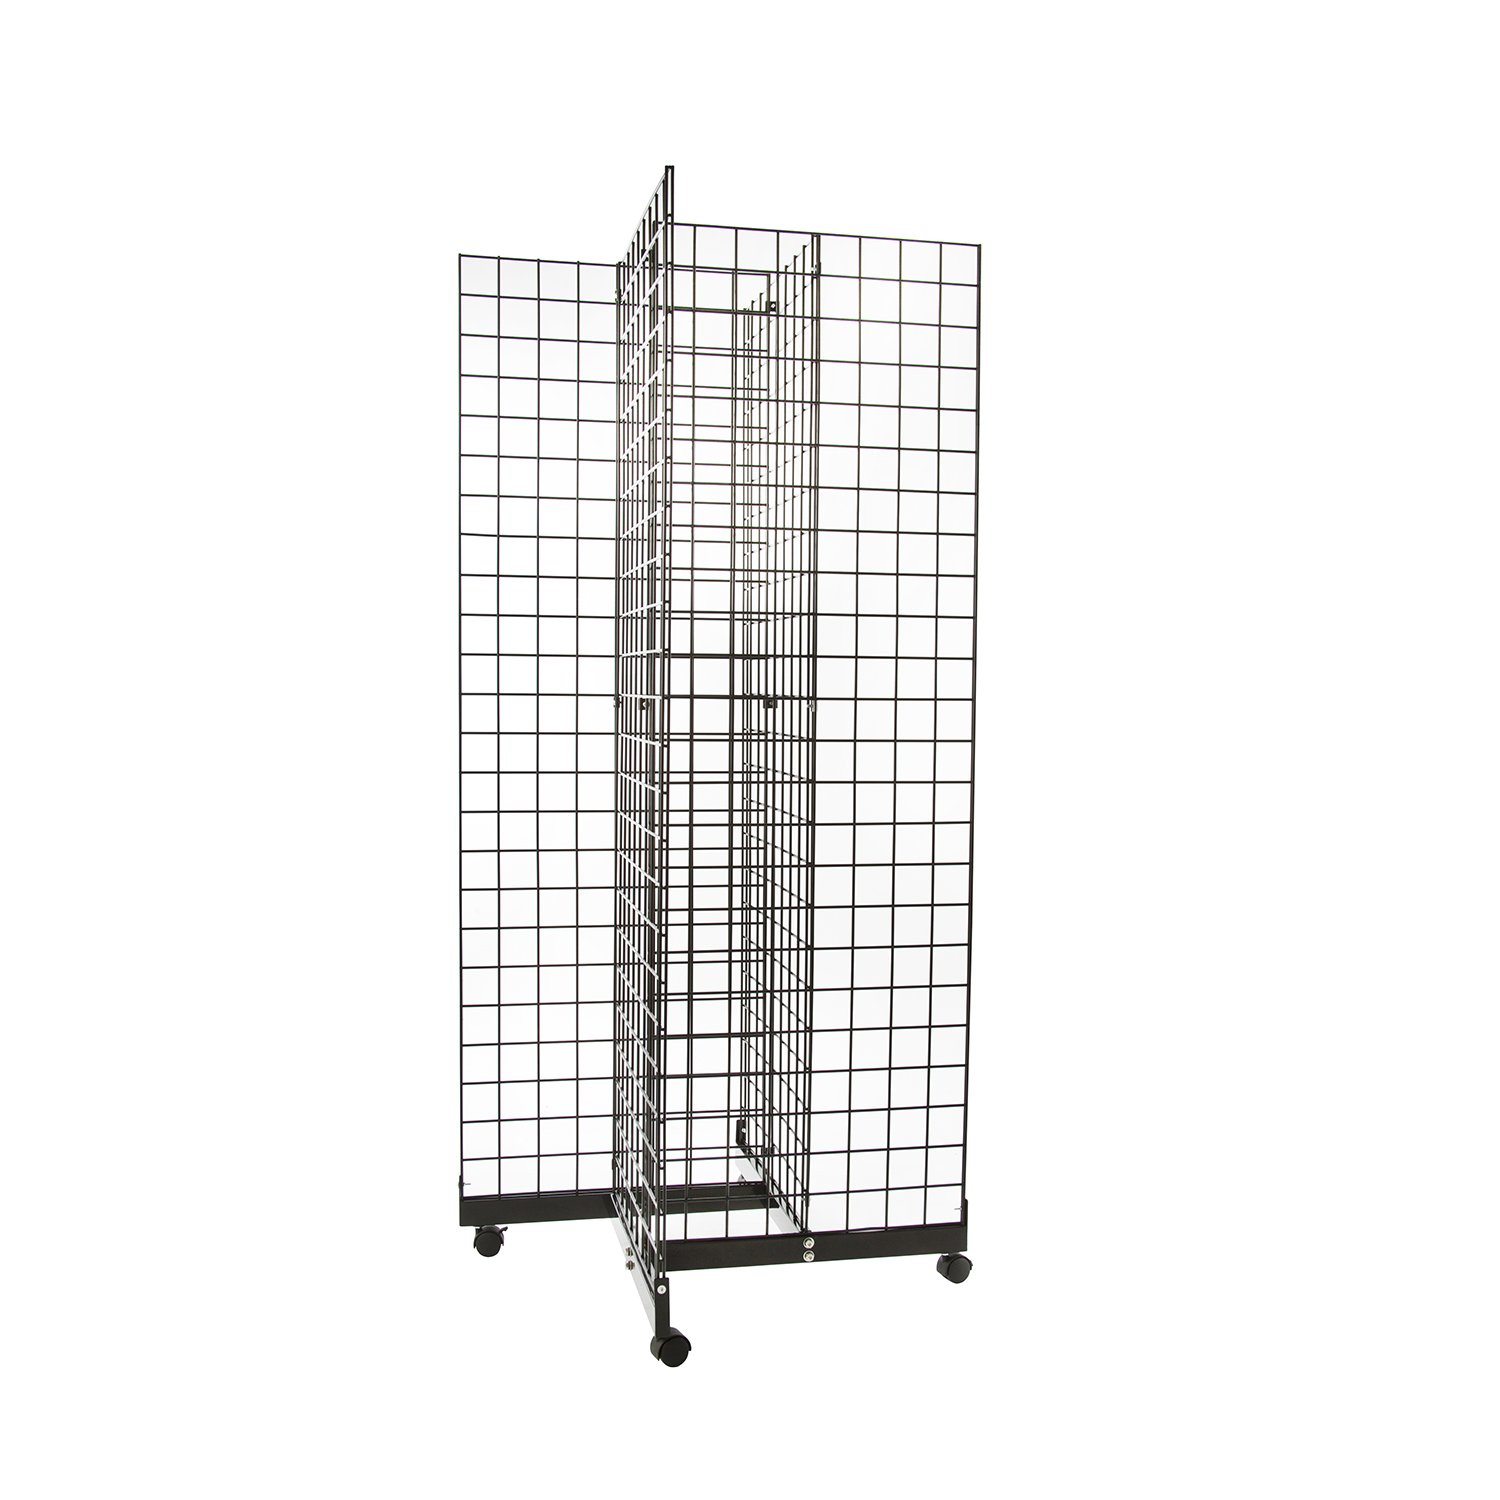 Only Hangers Black 4-Way Wire Grid Tower with Base and Casters - 2' x 6' Wire Grid Panel 4-Sided Rolling Display Rack